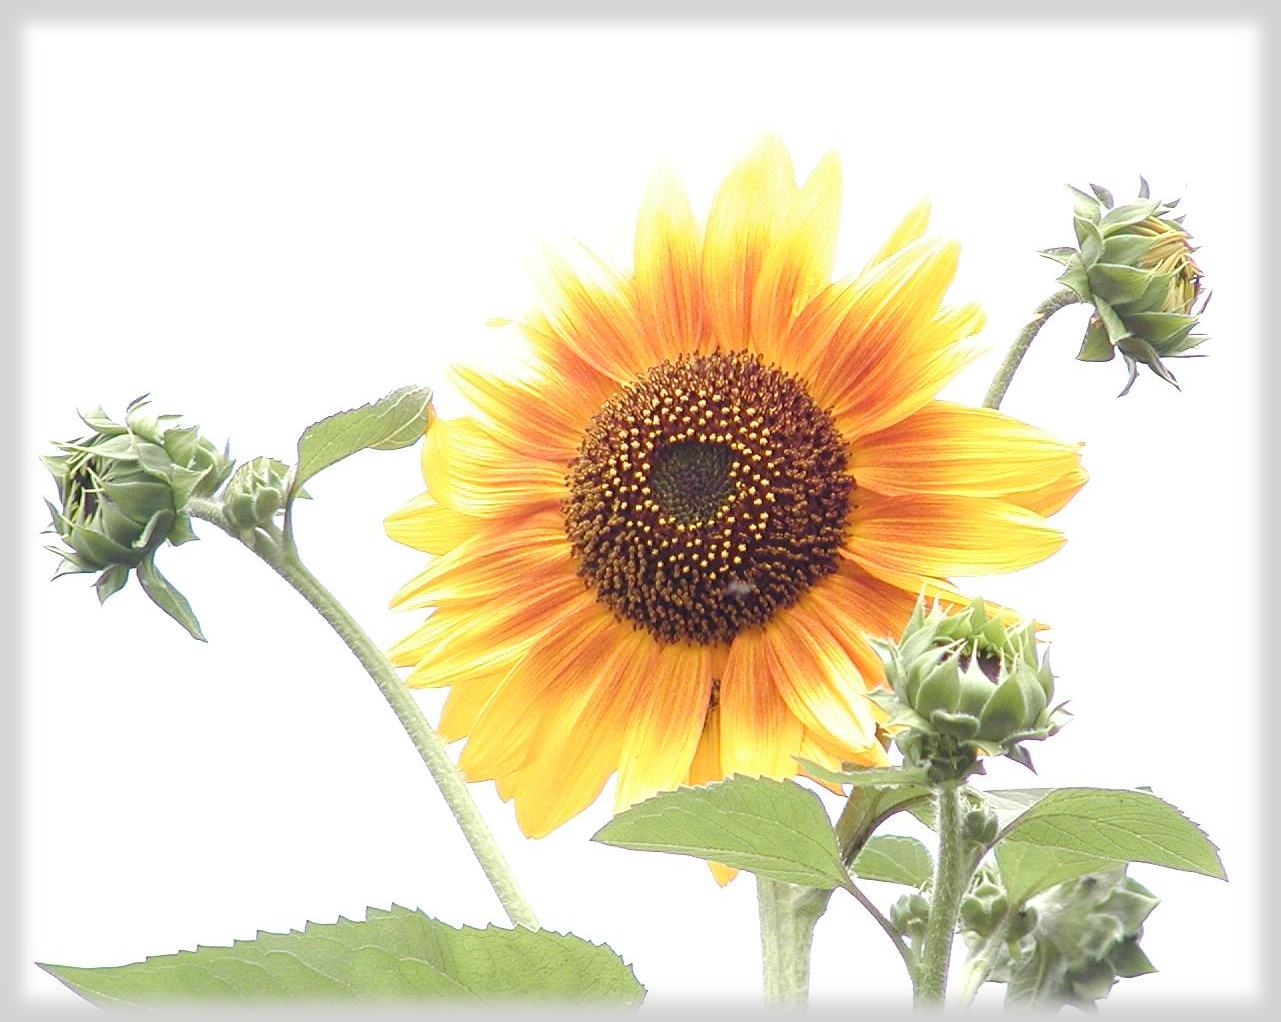 向日葵・Sunflower.